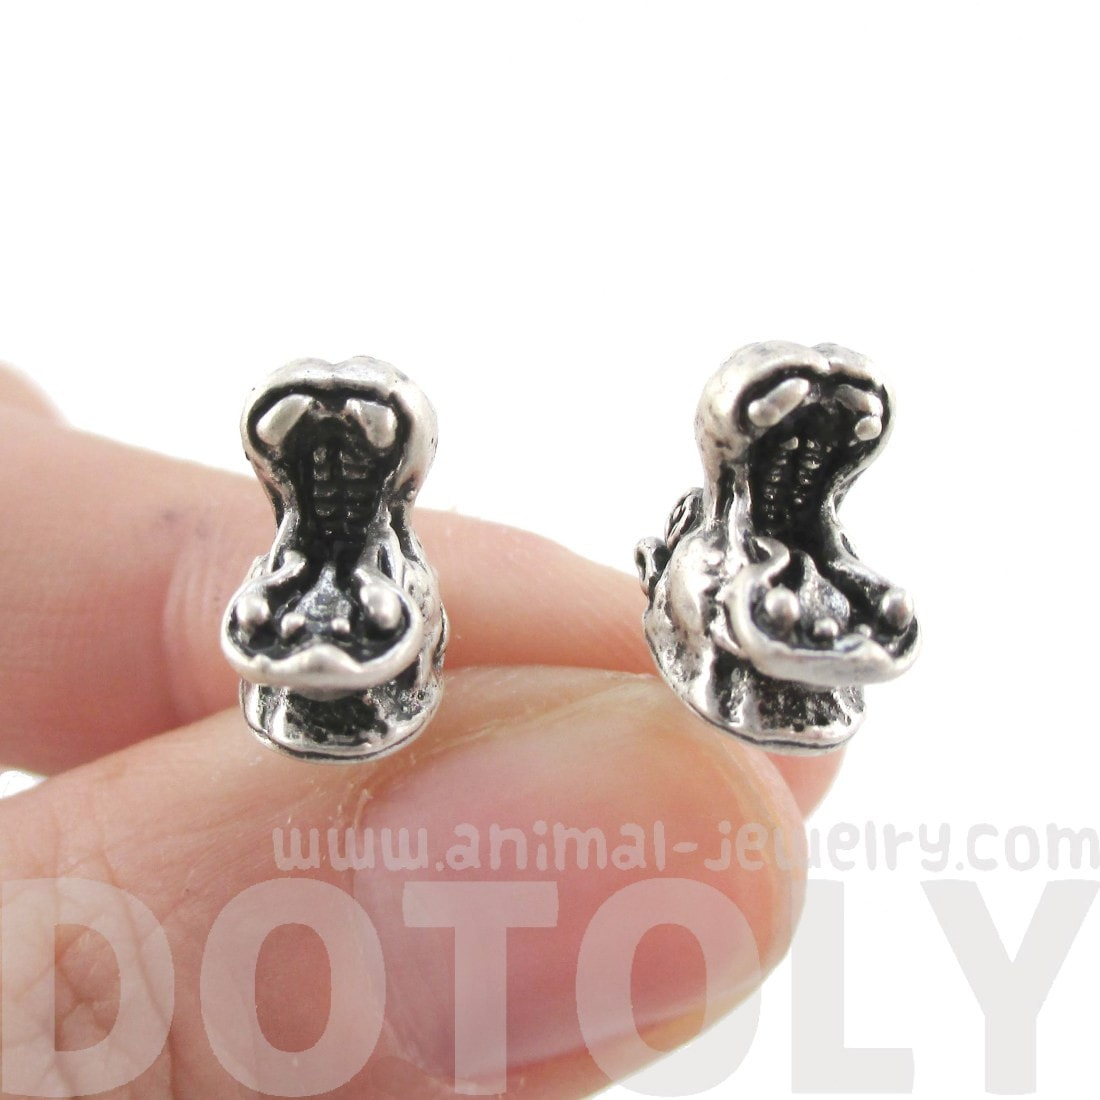 Miniature Hippopotamus Shaped Realistic Stud Earrings